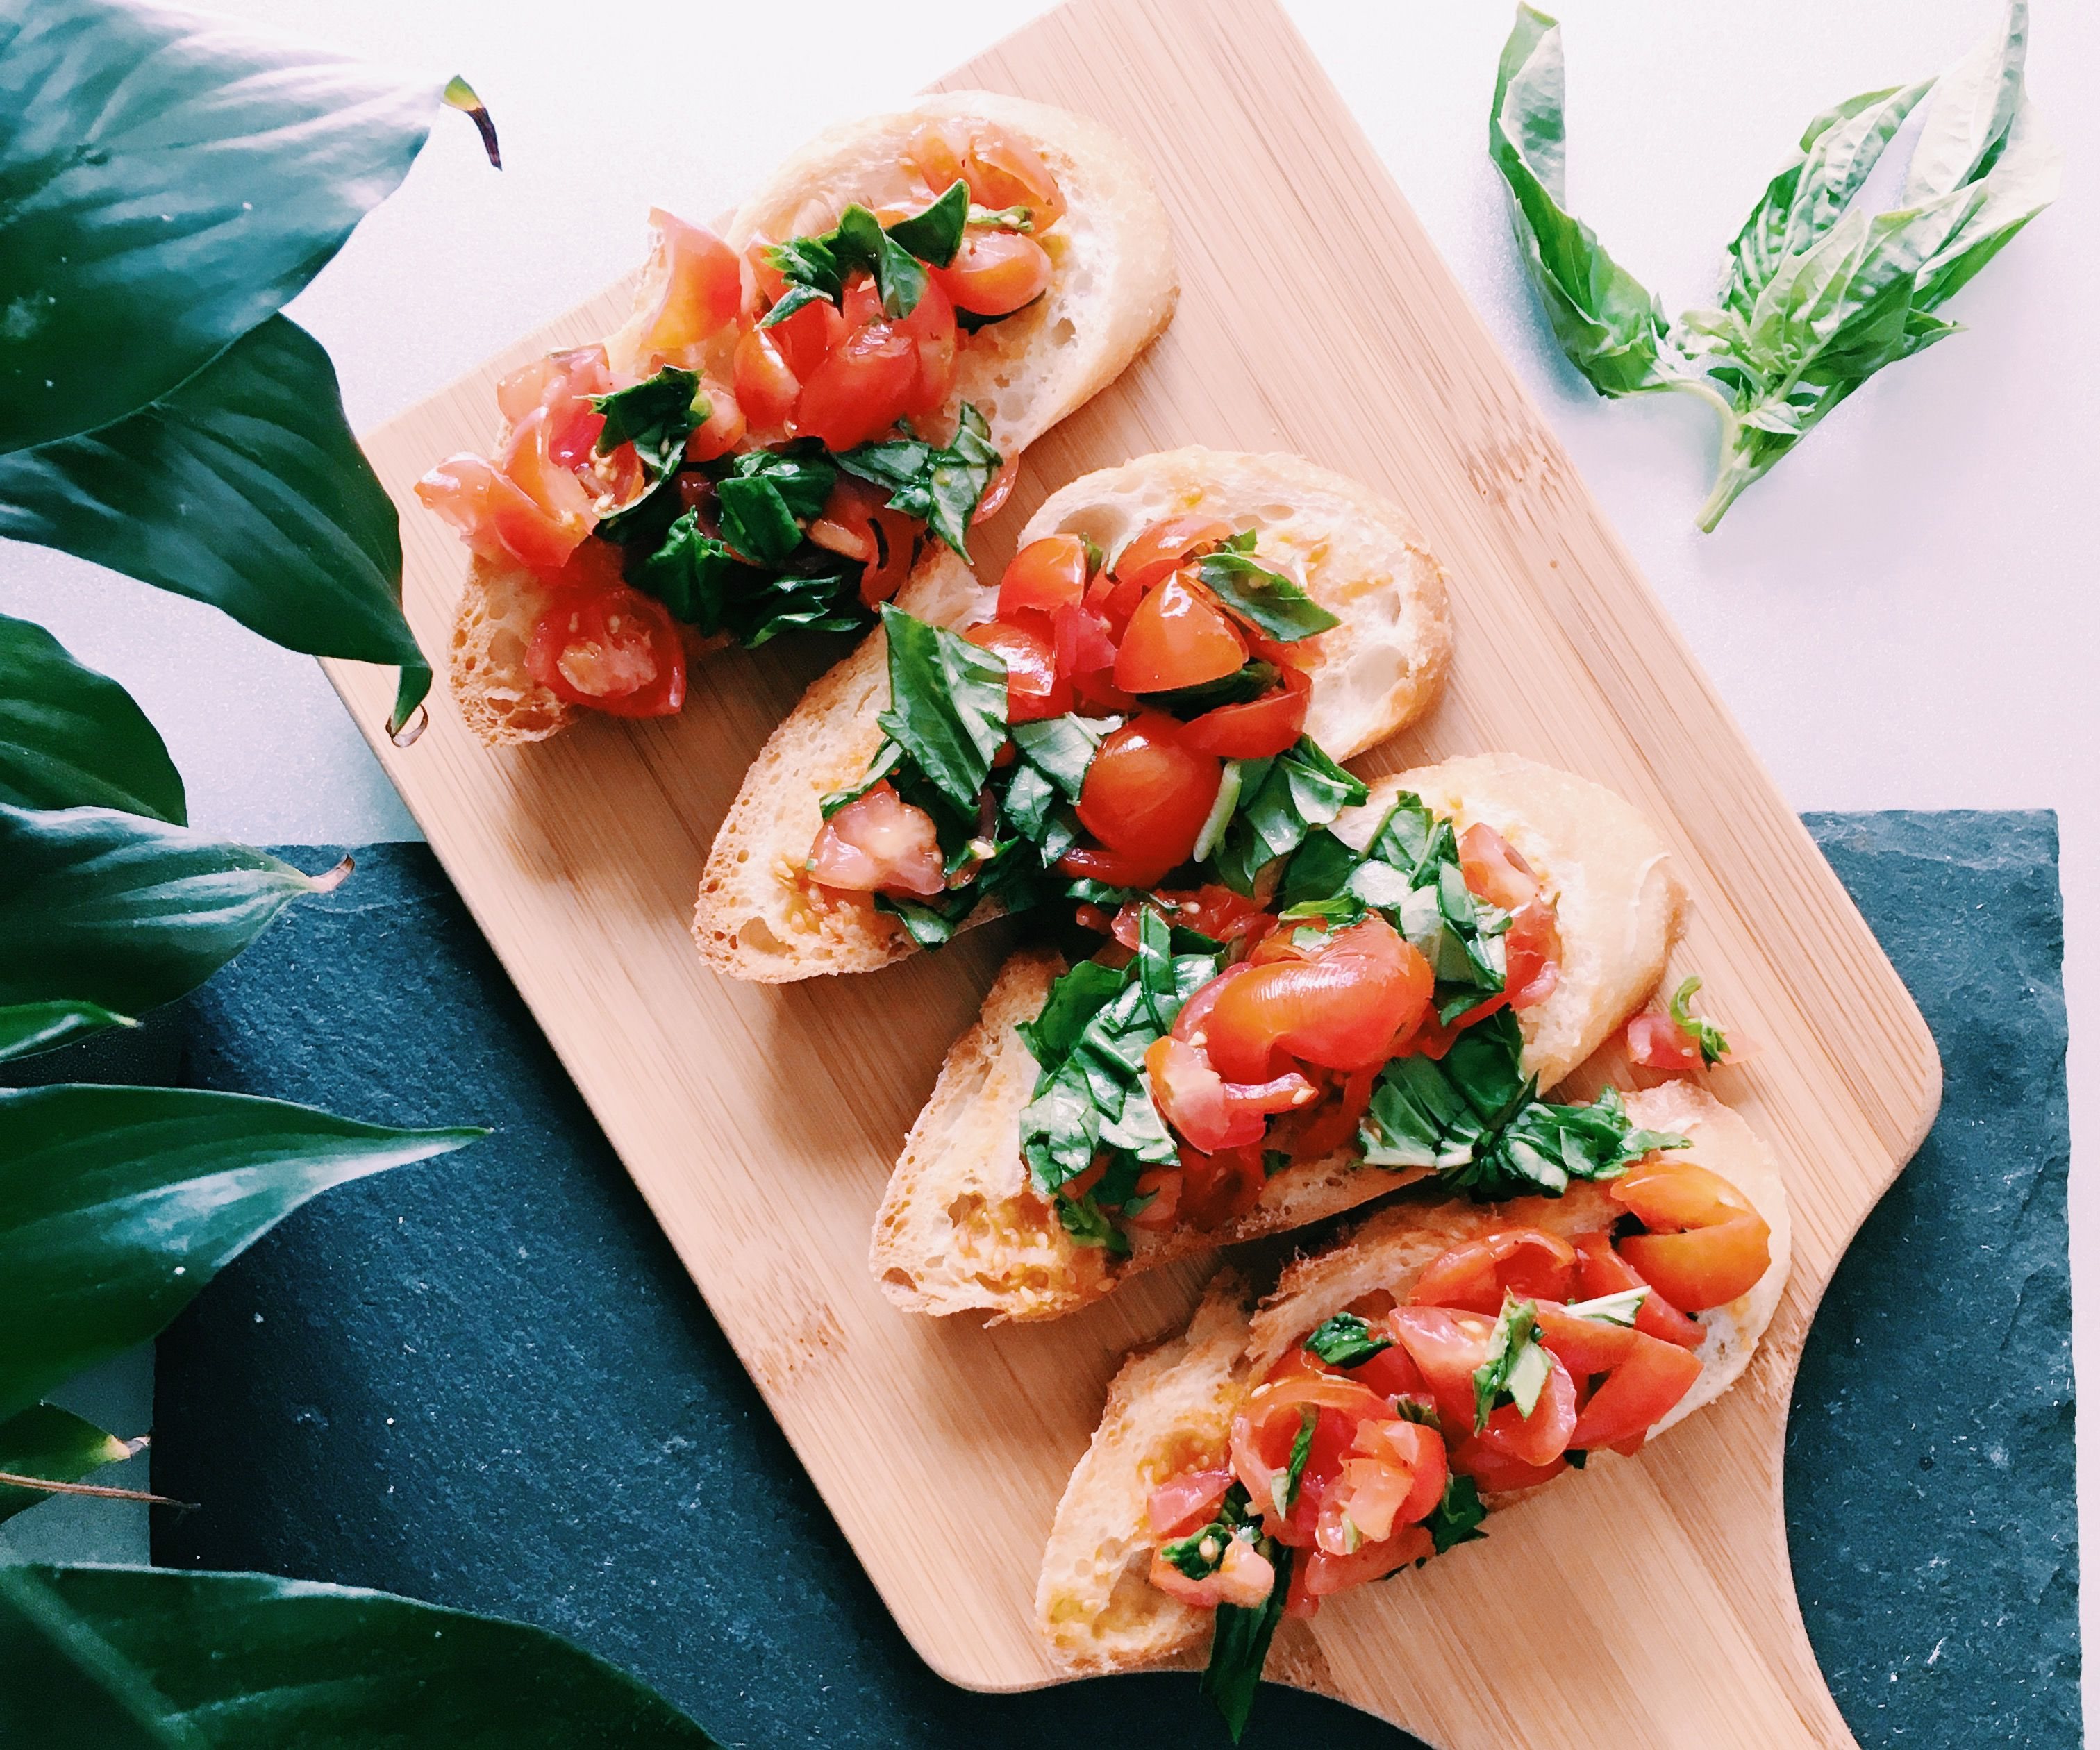 RECIPE | SIMPLE BRUSCHETTA